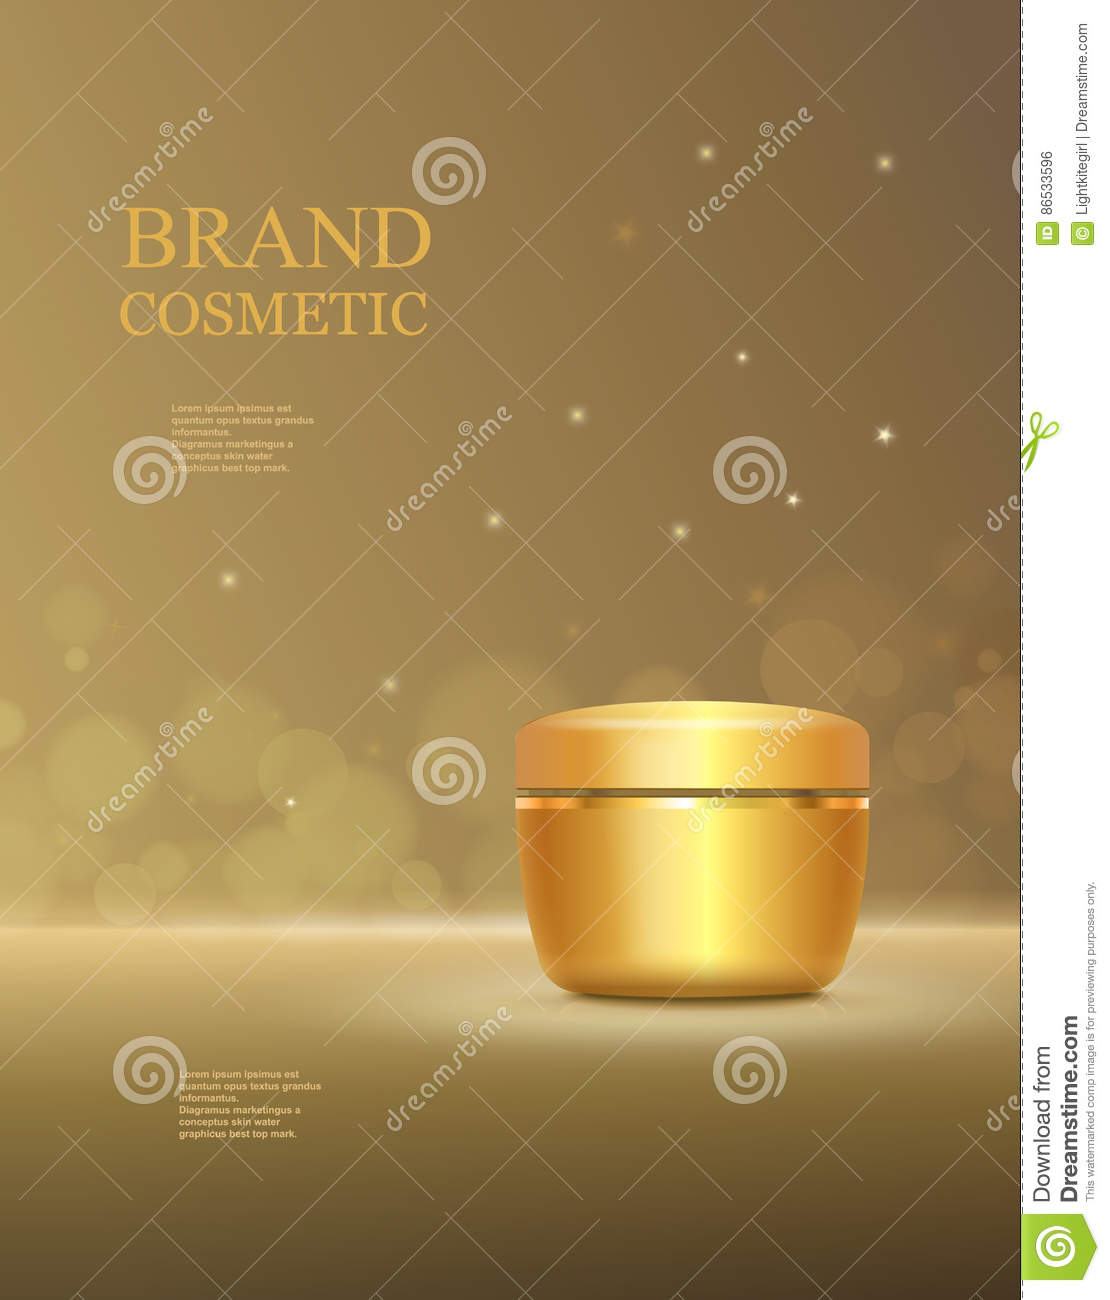 liquid template filters - skin moisturizer cosmetic design template cartoon vector